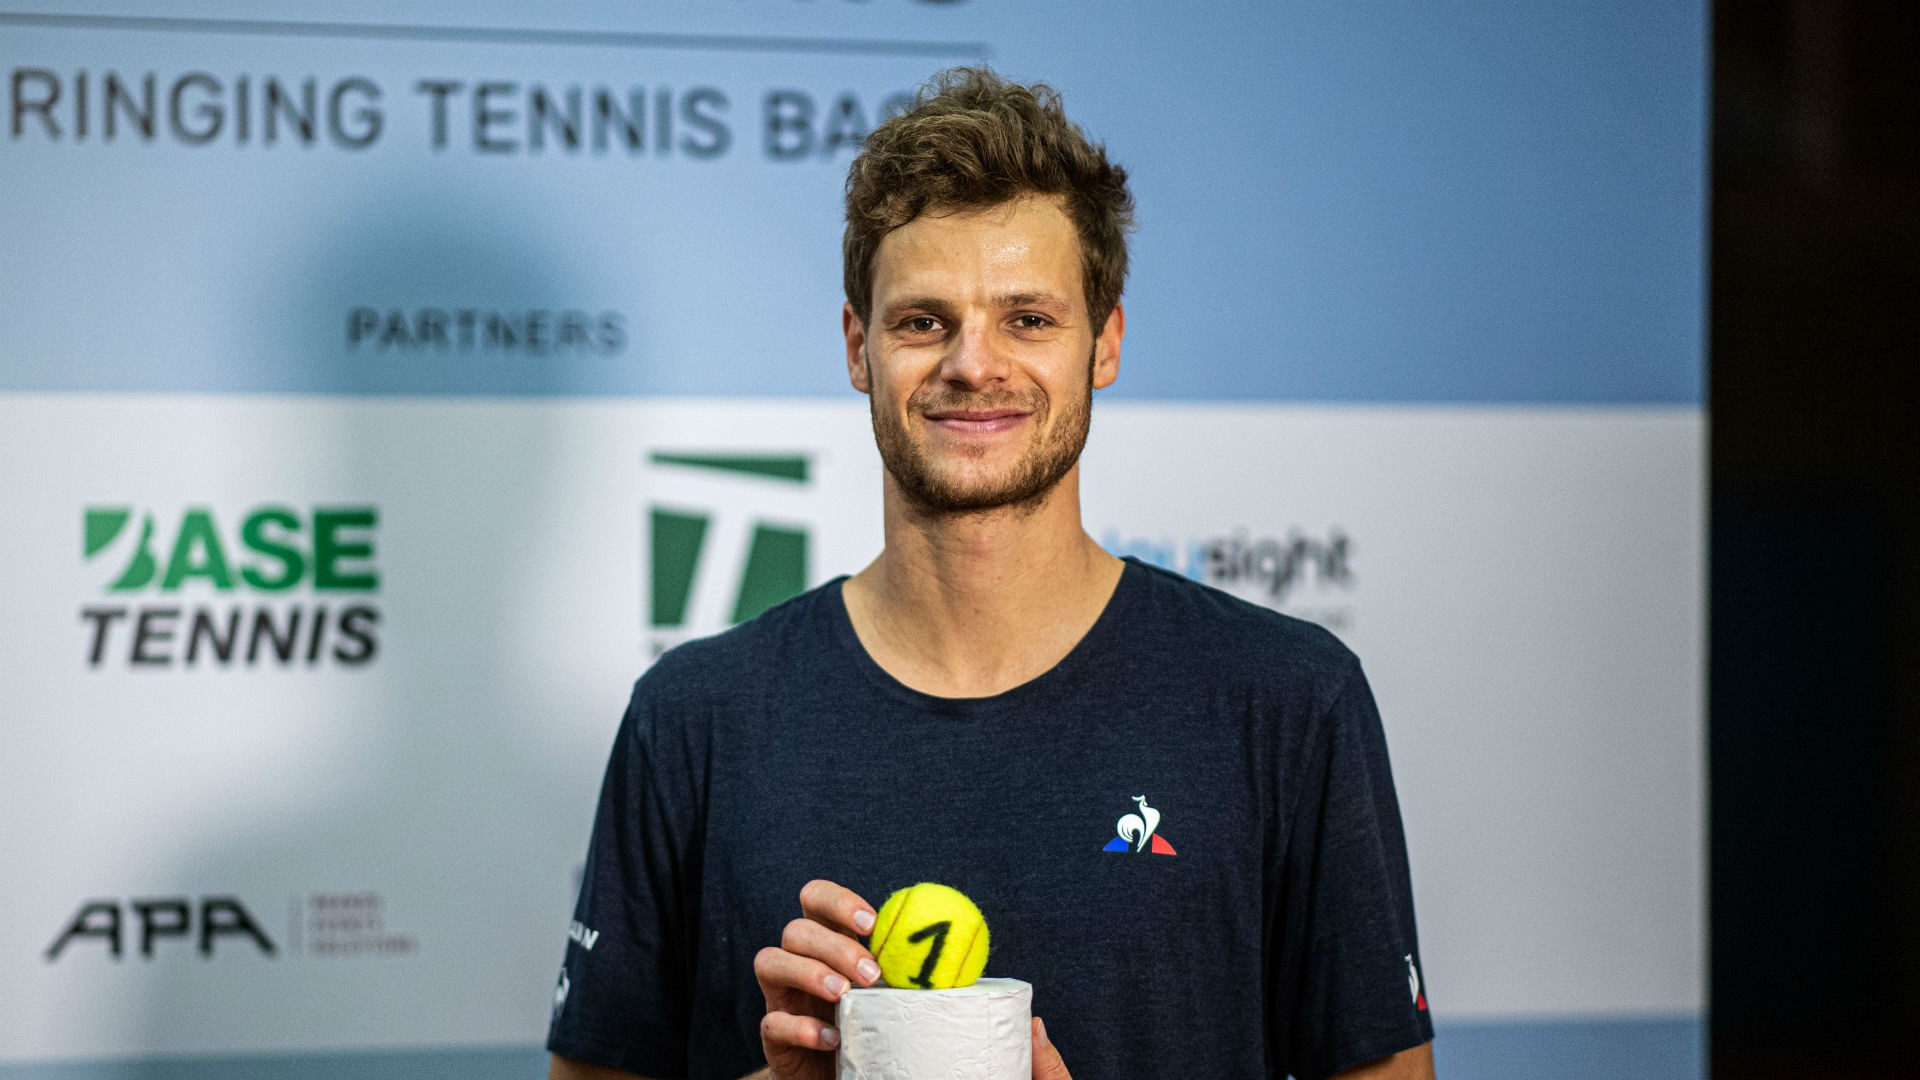 Yannick Hanfmann won the first edition of the Tennis Point Exo-Tennis exhibition in Germany.